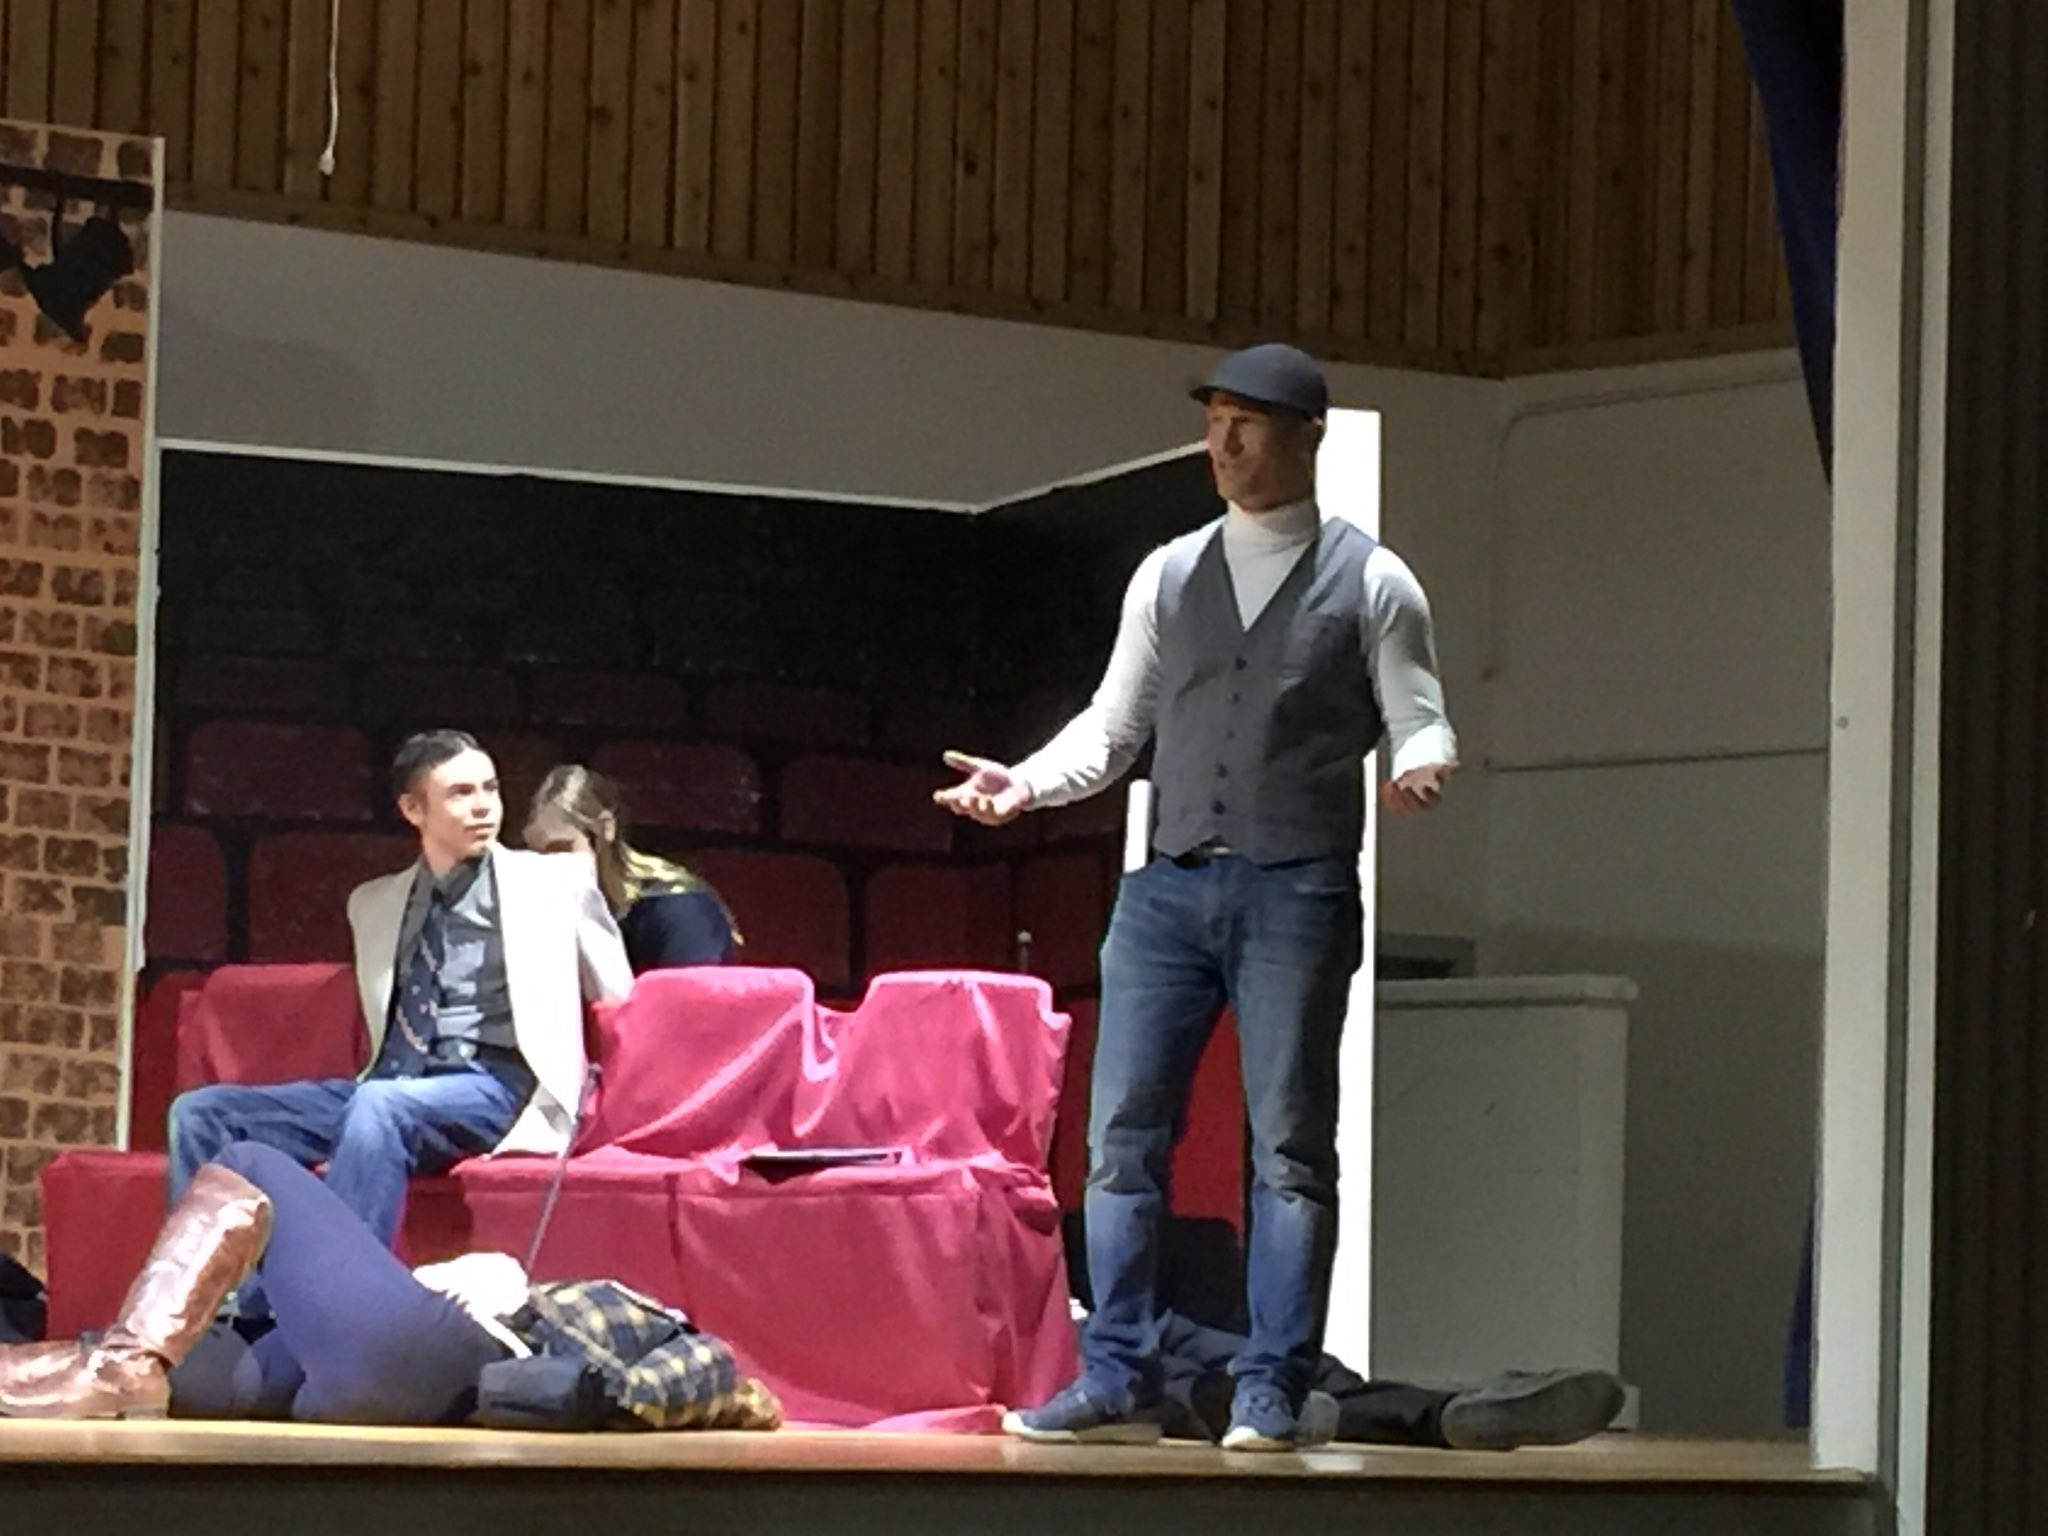 #csd71 @donaldaschool has the principal @mmsiemens playing a playwright in Murder Mystery. @GrantGosse https://t.co/QSScZvnYHr